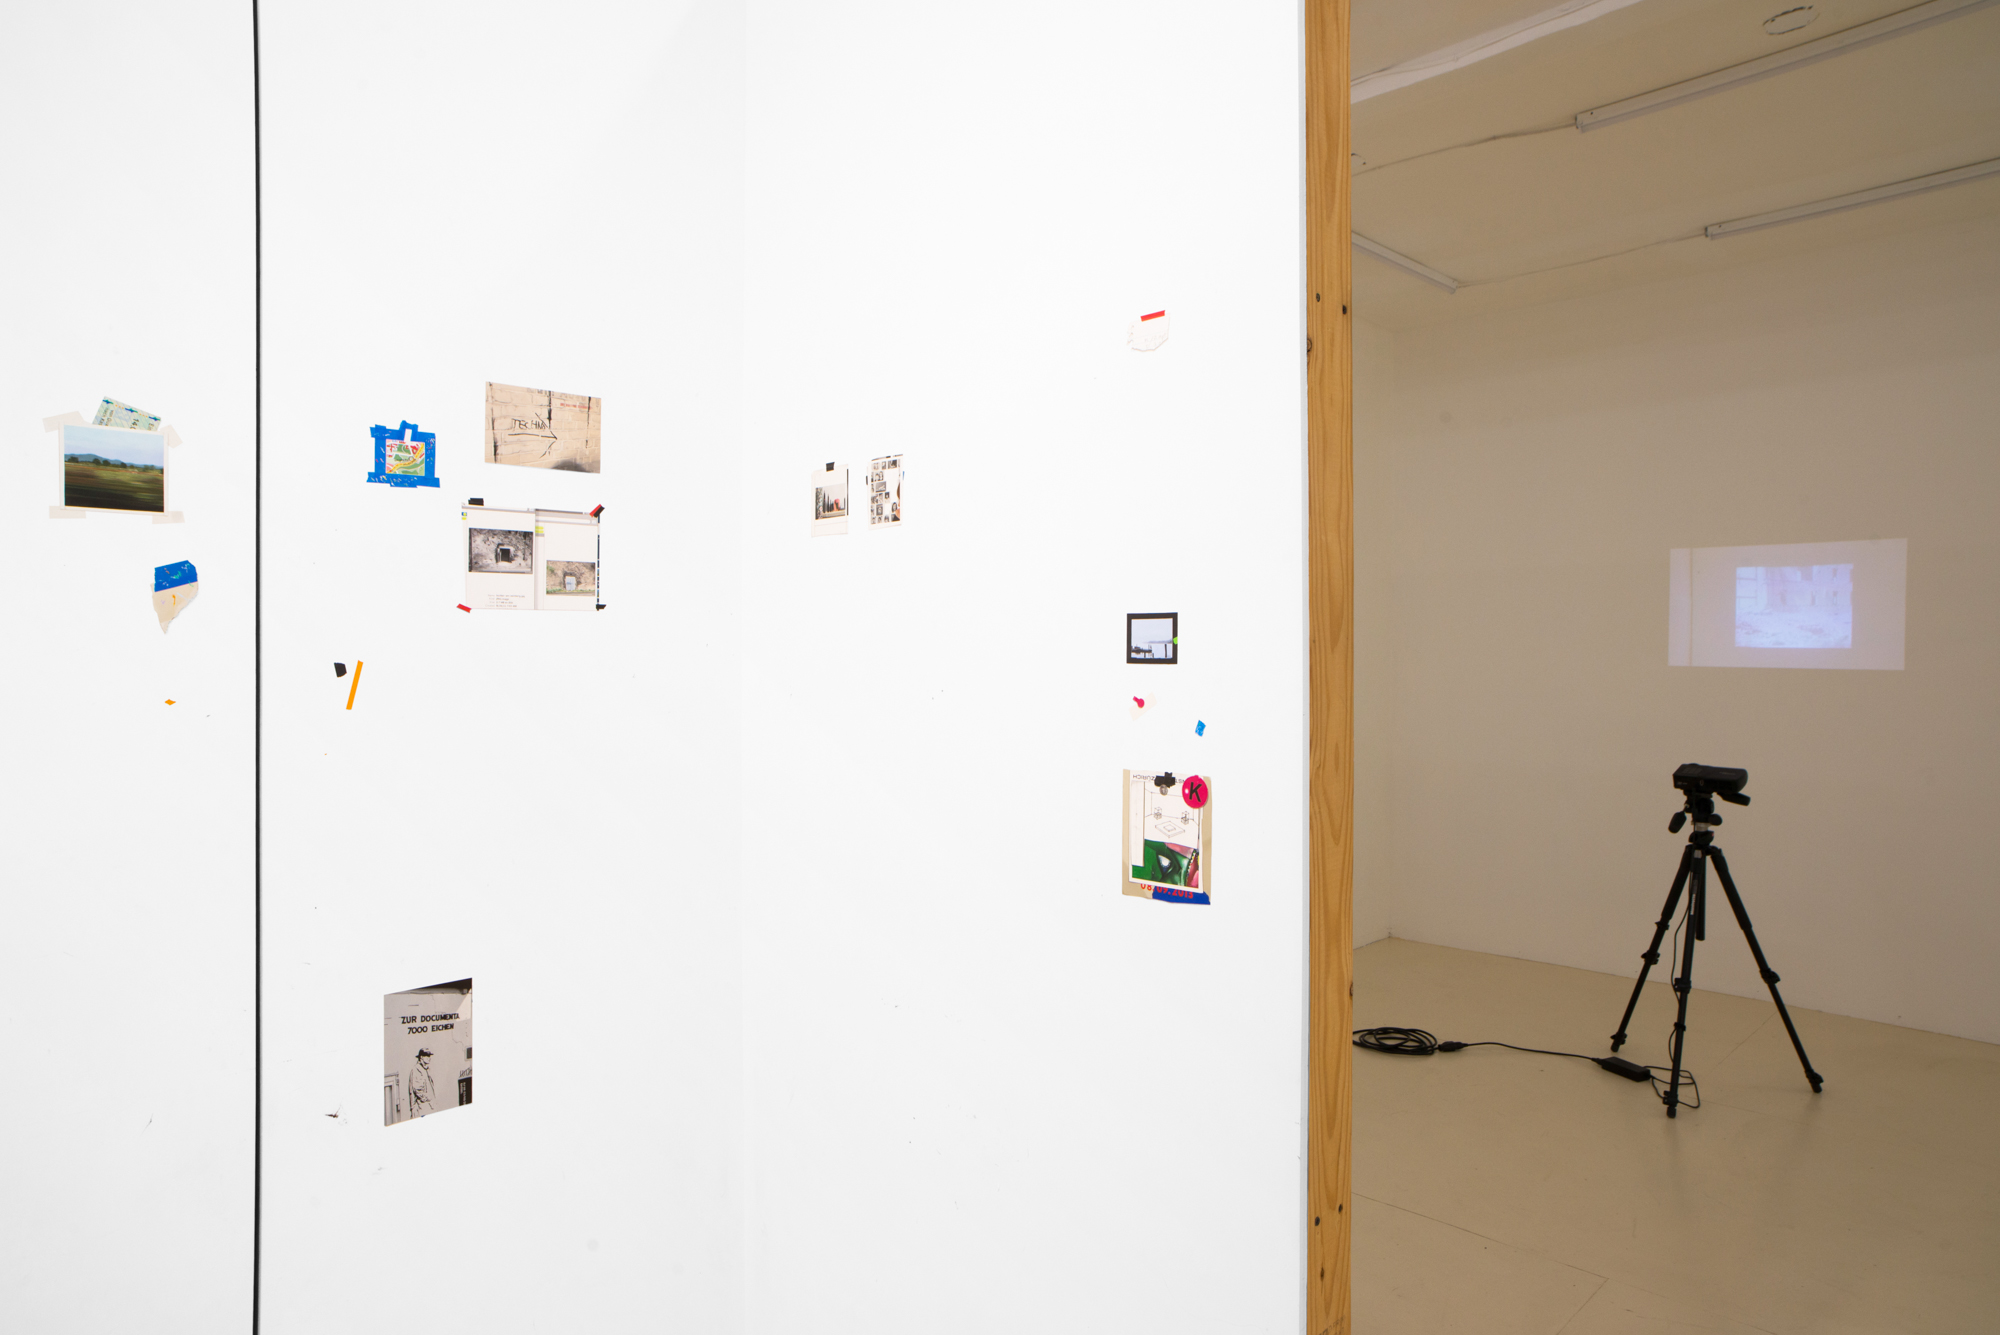 Place/Image/Object , Anna Plesset,  Travelogue (21st Century Room),  2013-2018, Oil on Panel, Exhibition View, Courtesy Jack Barrett, New York, 2019